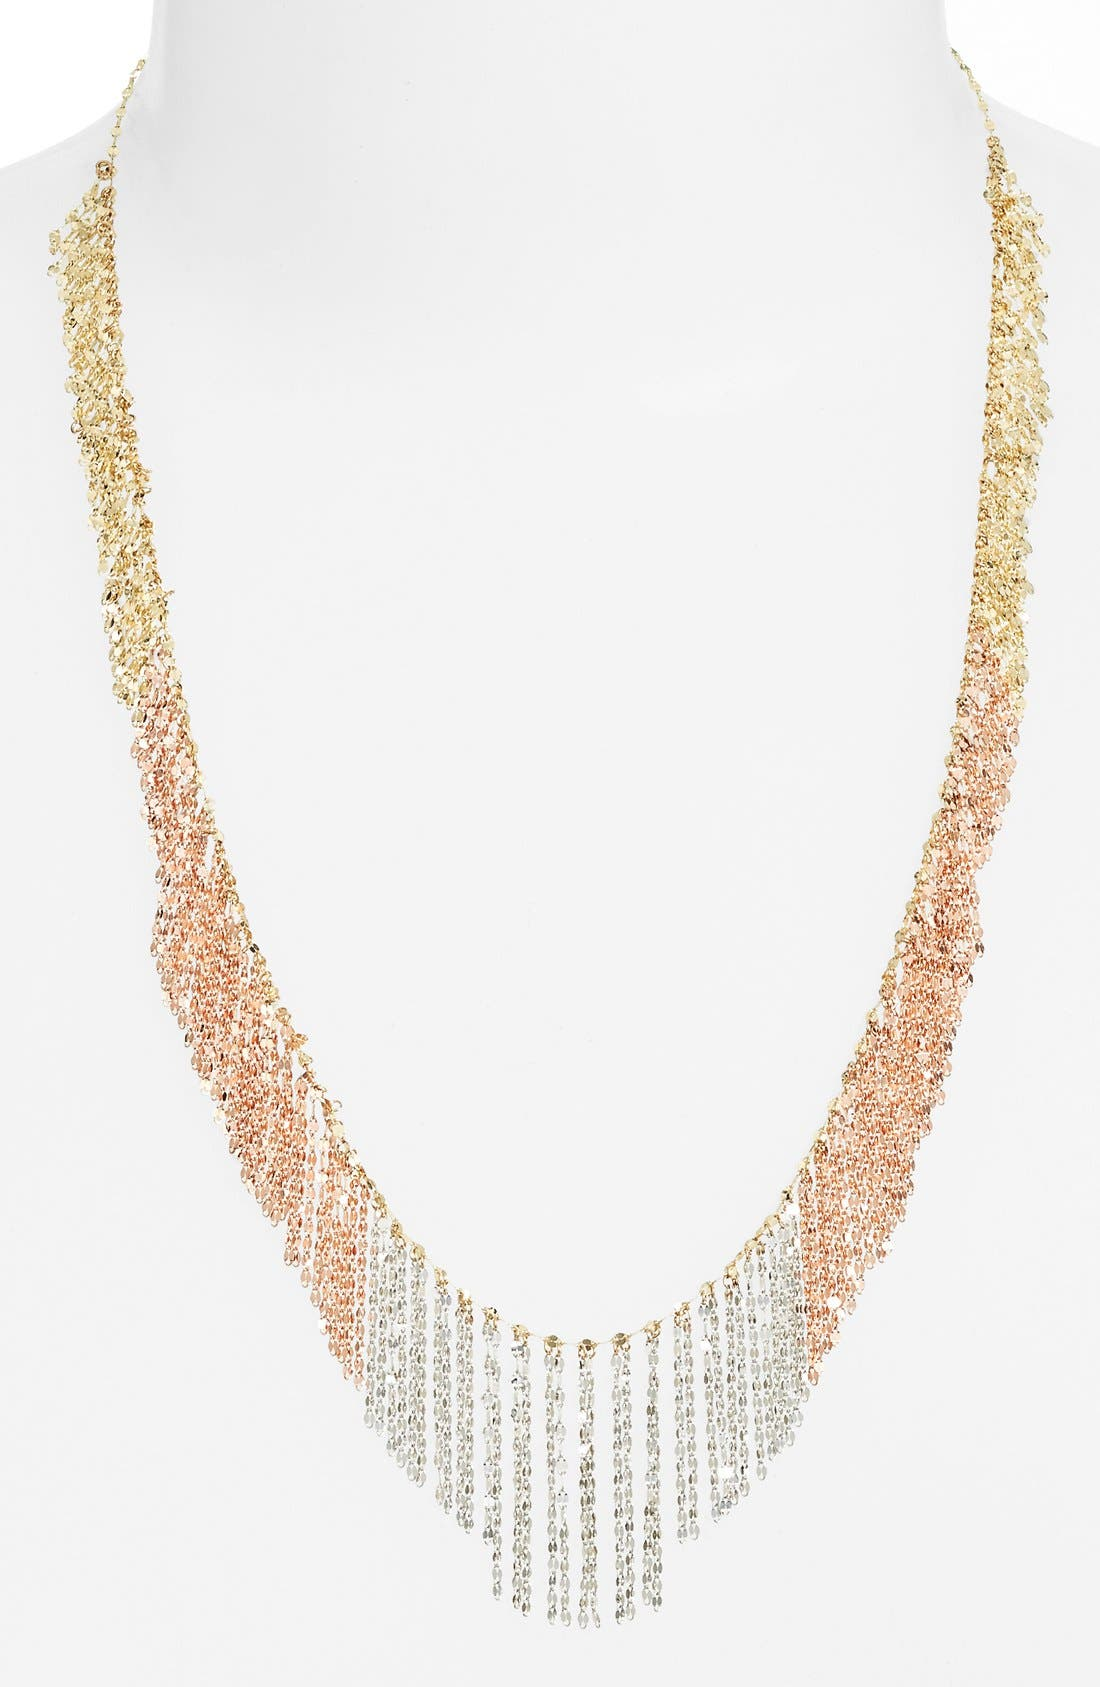 'Nude' Tri-Color Fringe Necklace,                             Main thumbnail 1, color,                             Yellow/ Rose/ White Gold